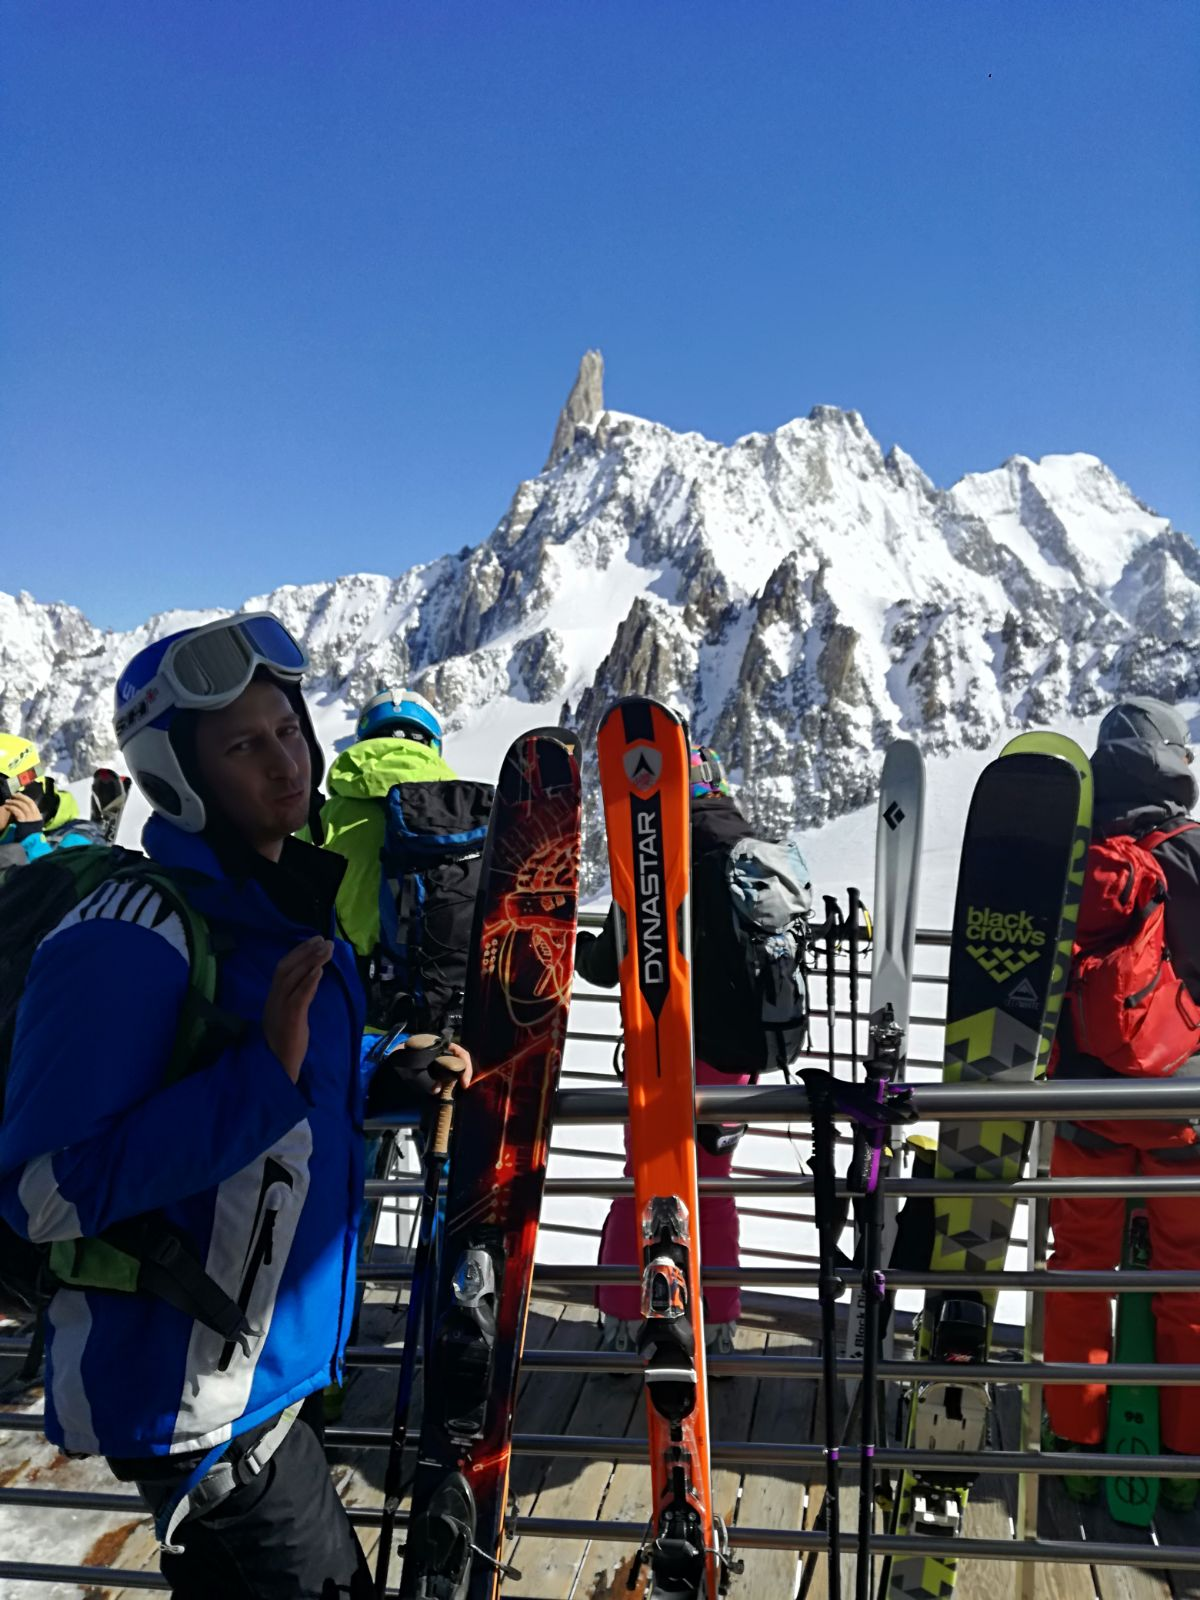 vallee blanche guide alpine proup (21)